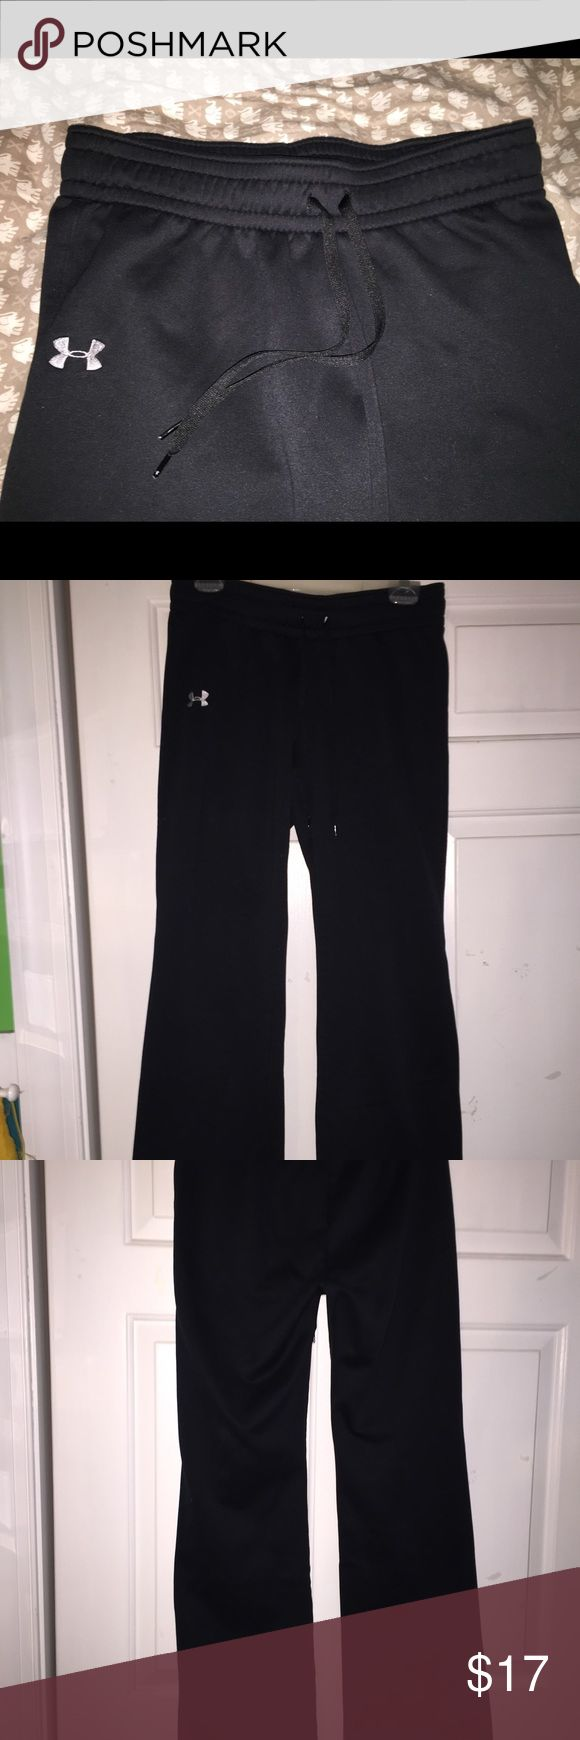 Under armour sweatpants perfect condition! Women's under armour sweatpants.. like perfect condition because they never actually fit me😩 so no stains, rips, or even worn out at all. If you have any questions feel free to ask! Size medium. I like offers😛💸 Under Armour Pants Track Pants & Joggers